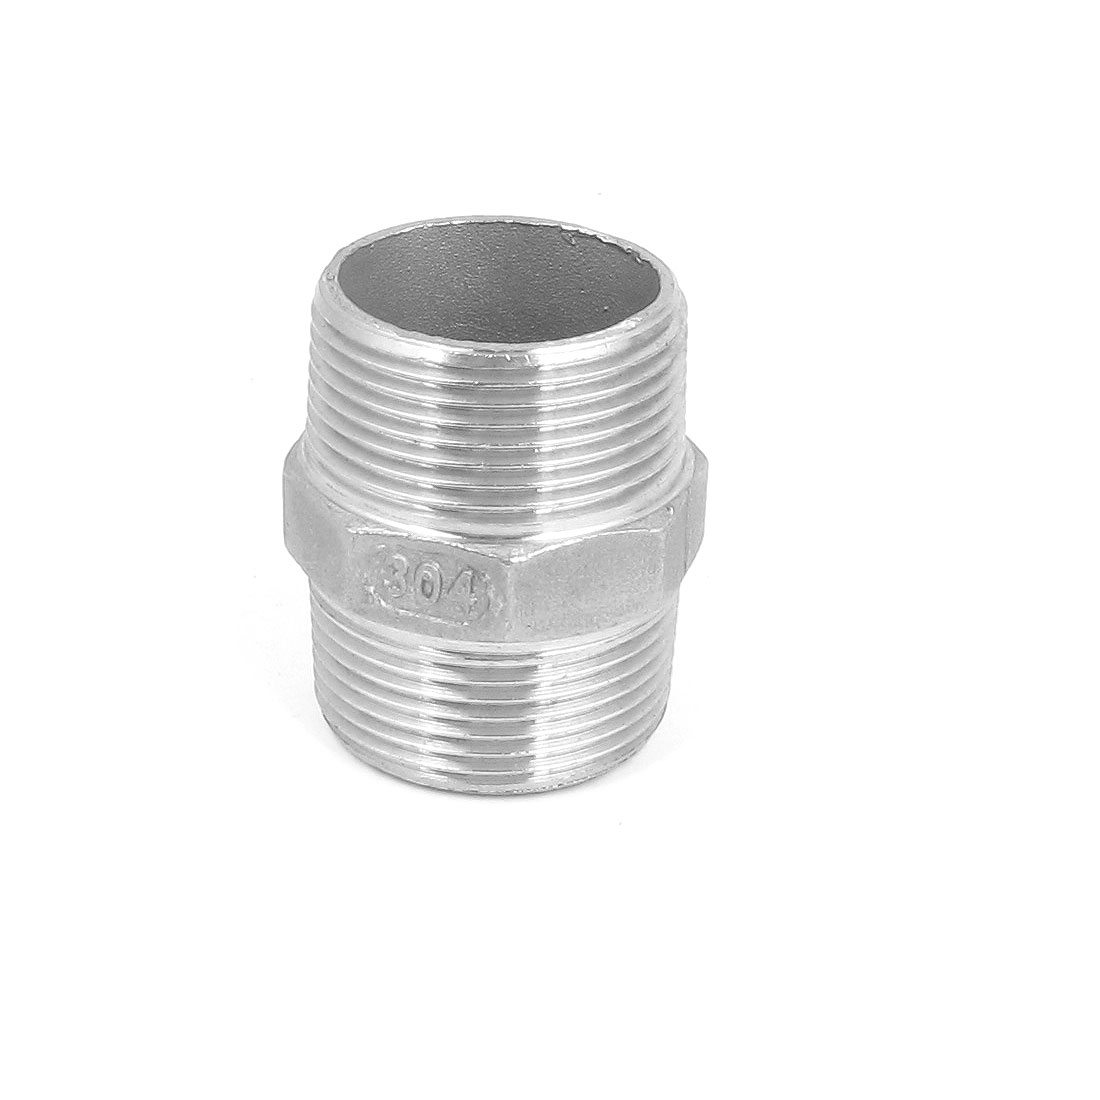 1 1/4 BSP to 1 1/4 BSP Male Thread Hex Nipple Quick Coupler Silver Tone